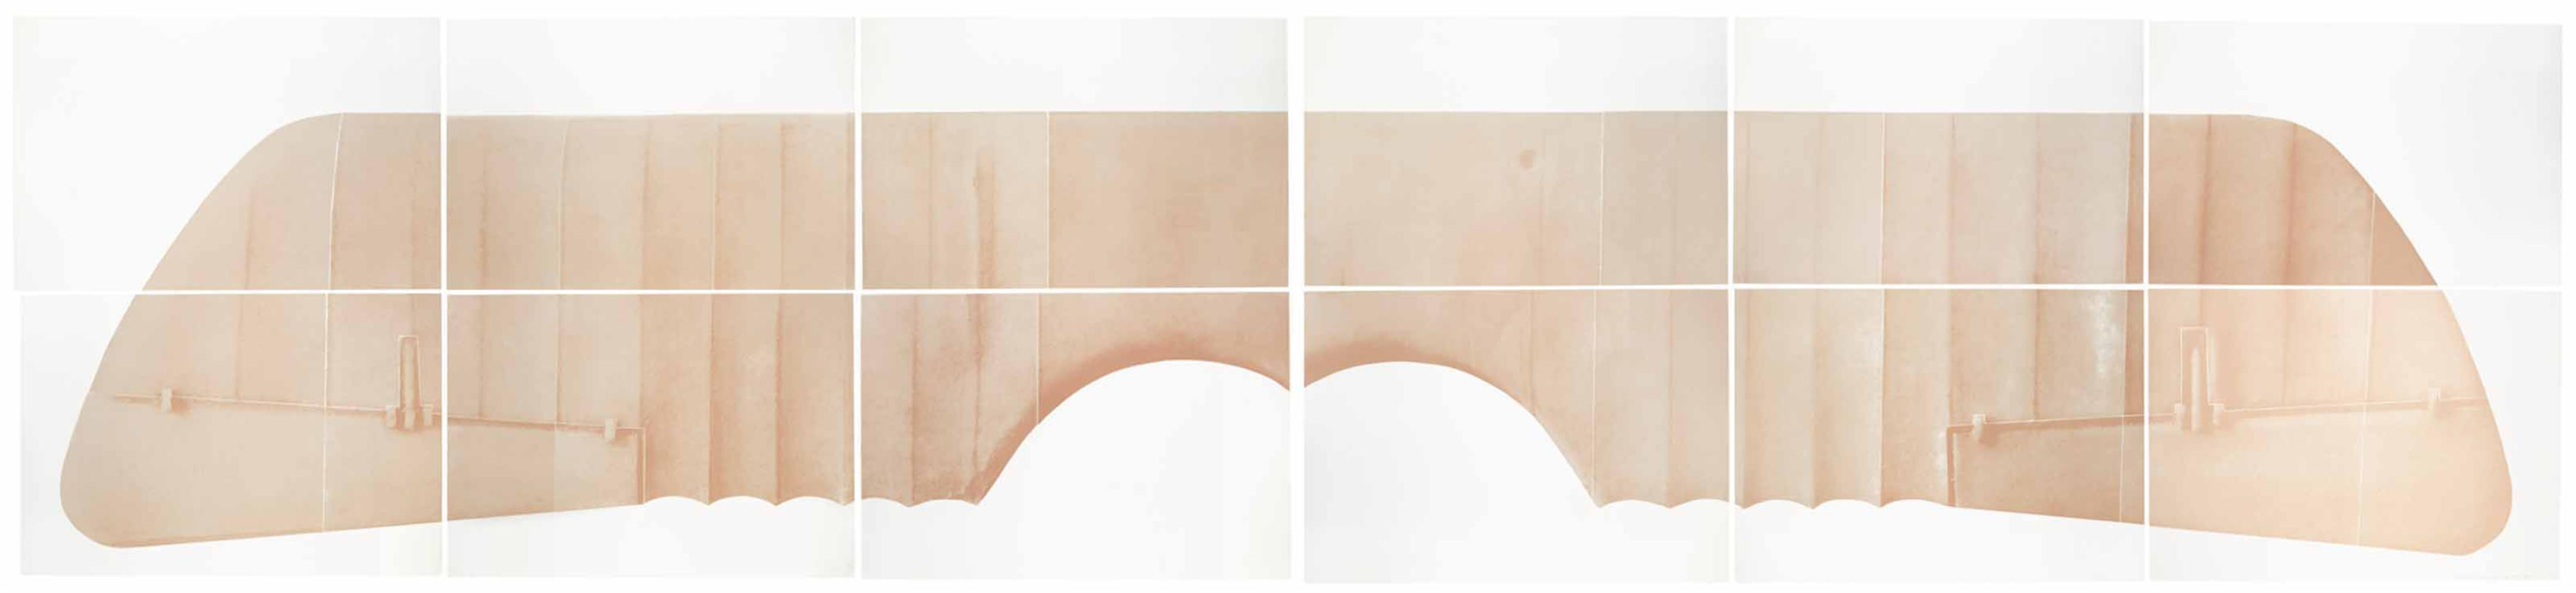 Vito Acconci-2 Wings For Wall And Person-1981